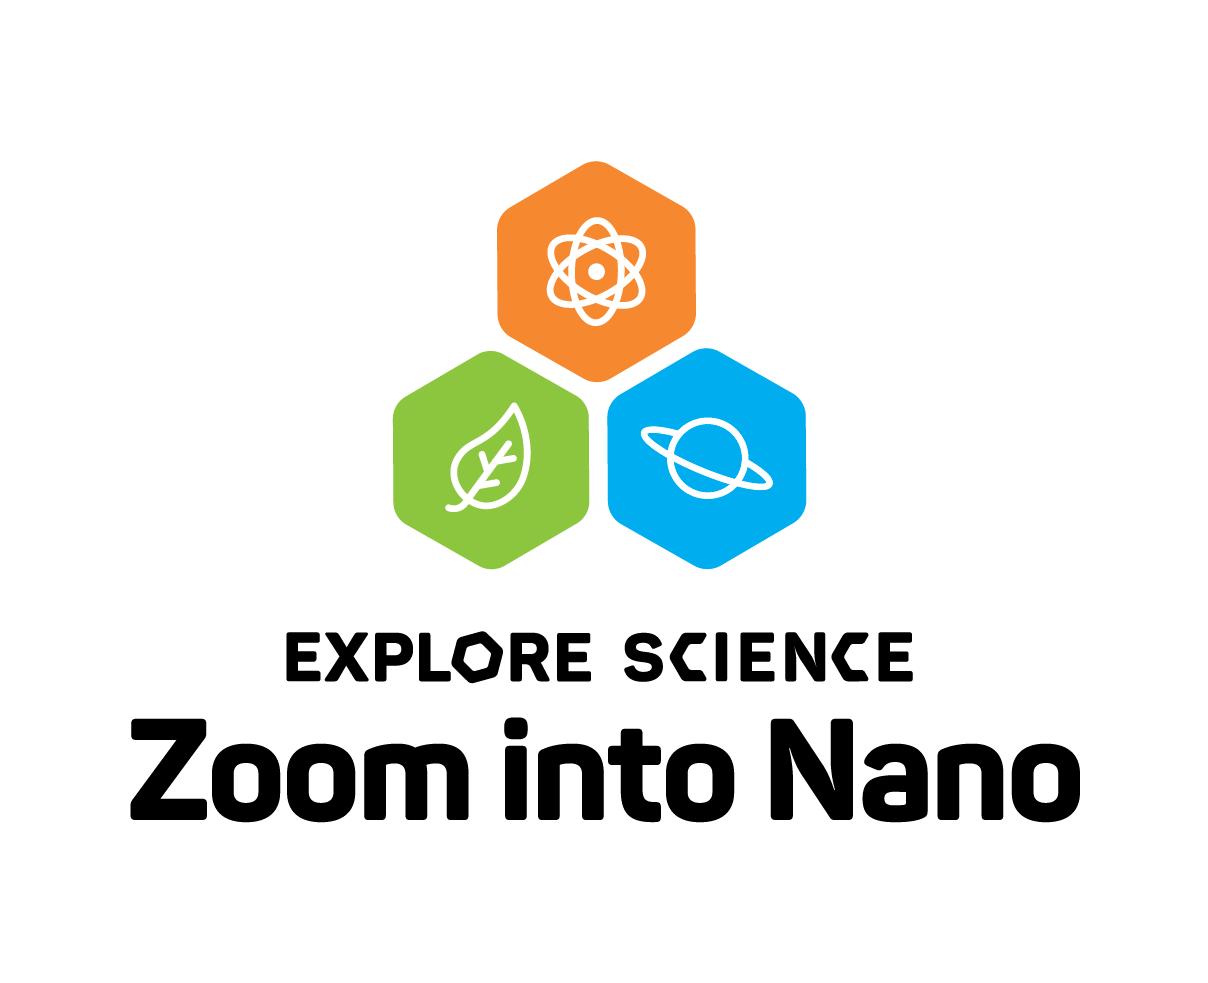 Explore science zoom into nano logo